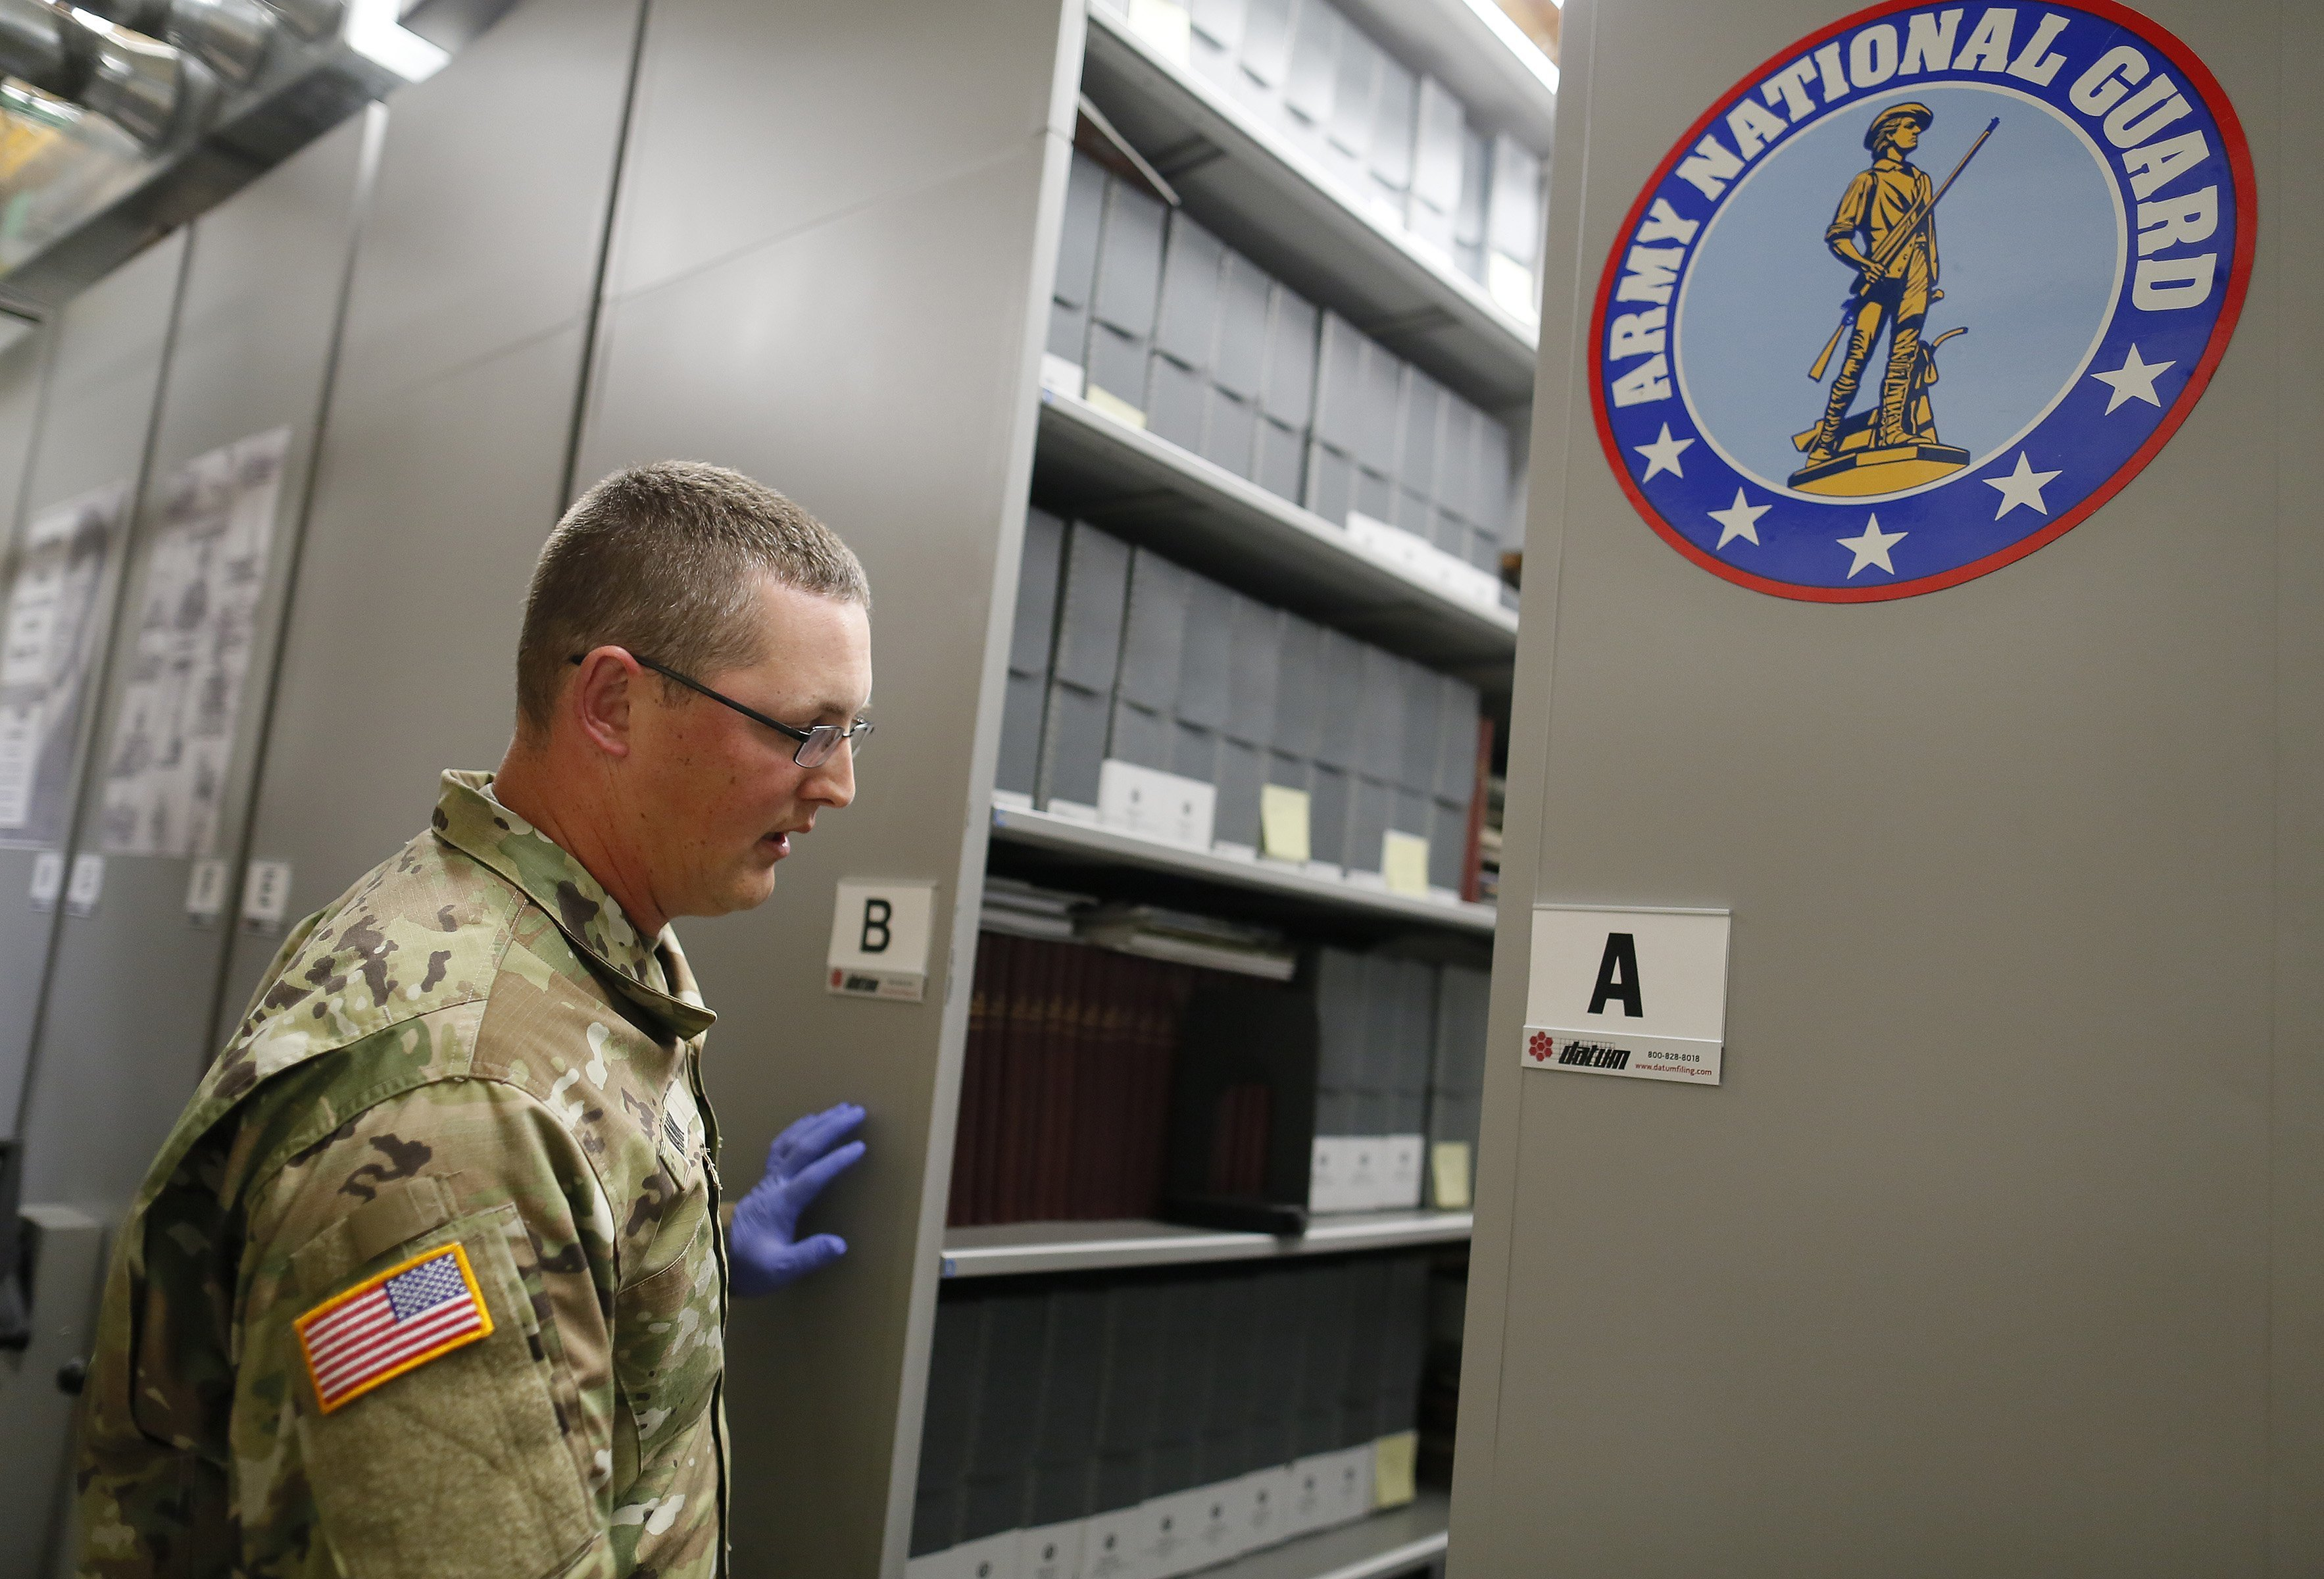 In this July 17, 2018, photo, Sgt. 1st Class Josh Mann, the Ohio Army National Guard historian, opens one of the archival filing cabinets containing historical books and documents inside the Beightler Armory in Columbus, Ohio. The Ohio National Guard is celebrating its 230 years of service. (Adam Cairns/The Columbus Dispatch via AP)